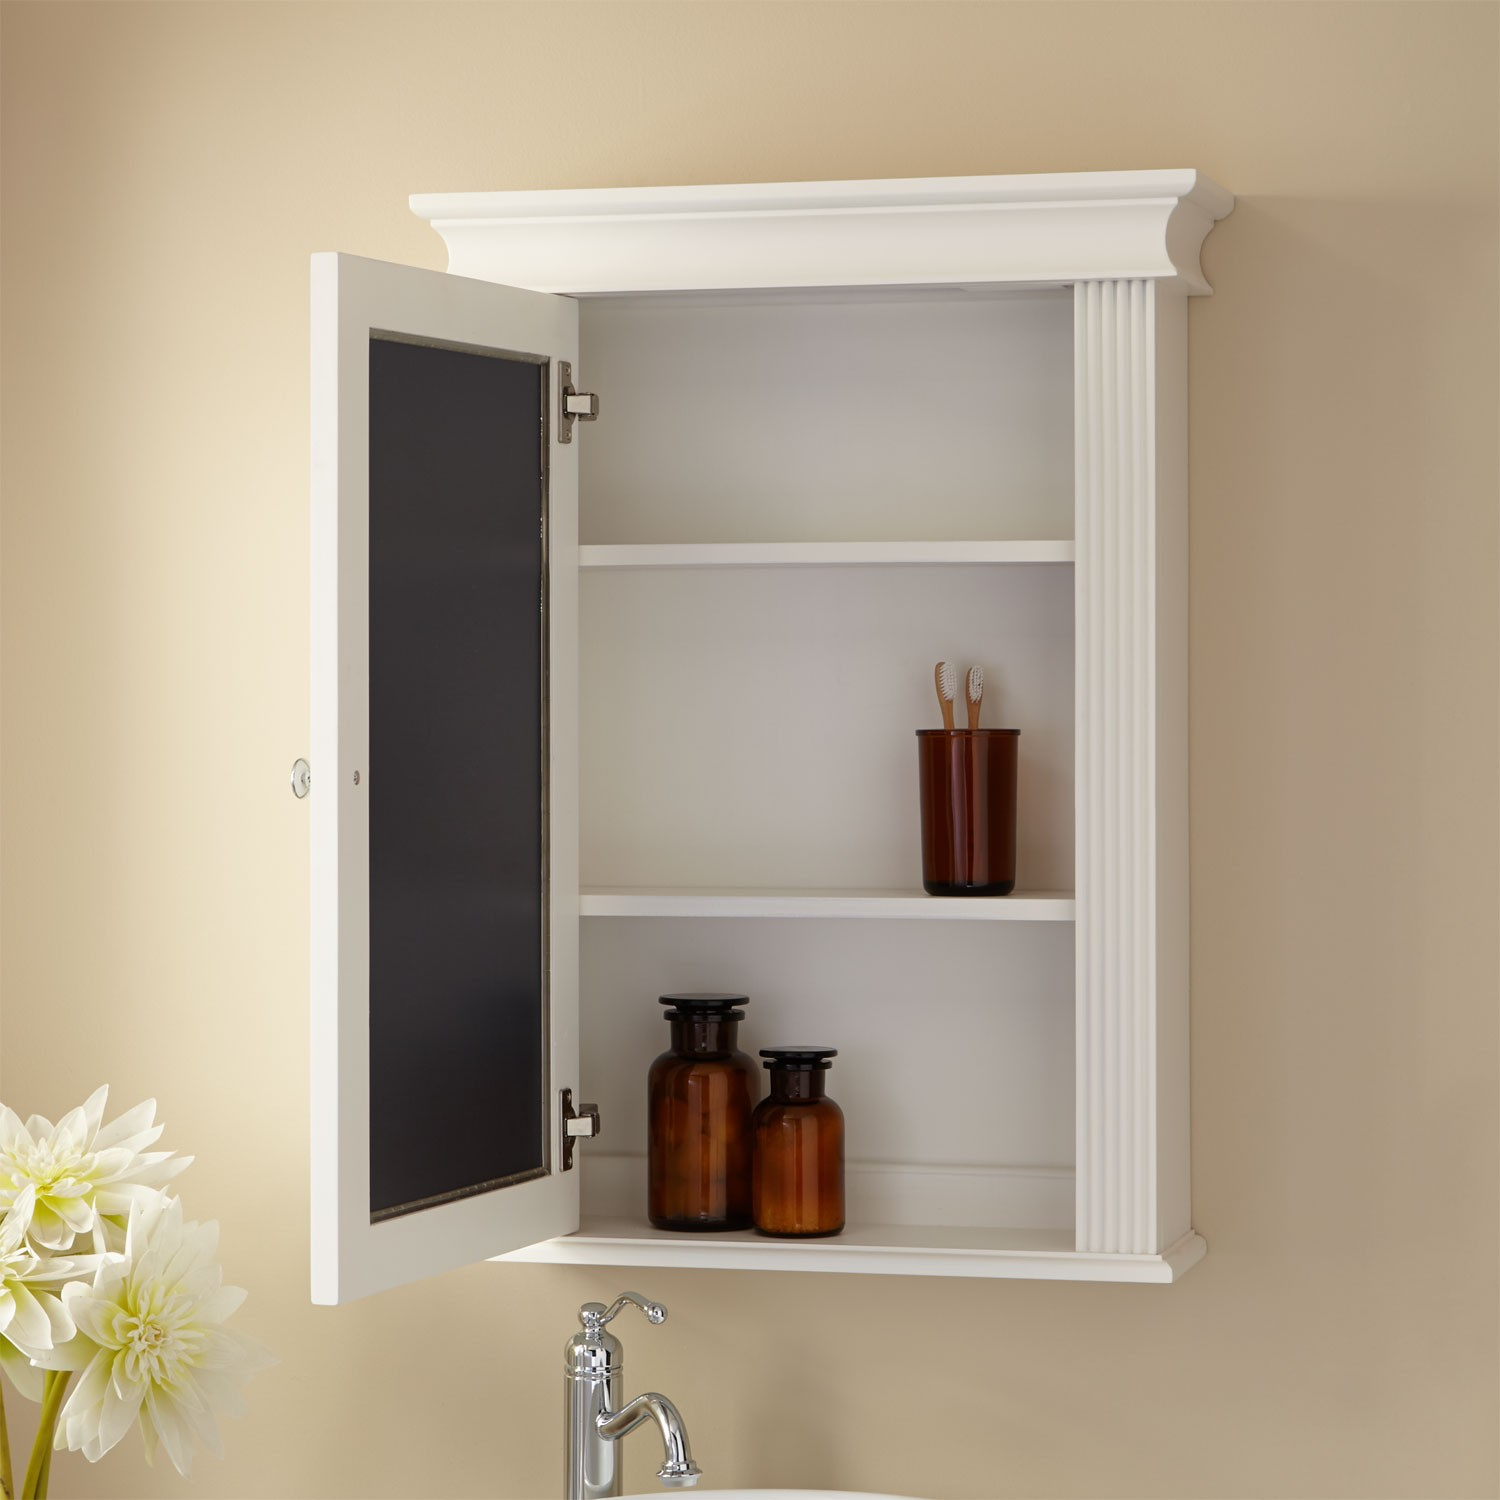 White Wooden Recessed Medicine Cabinet No Mirror